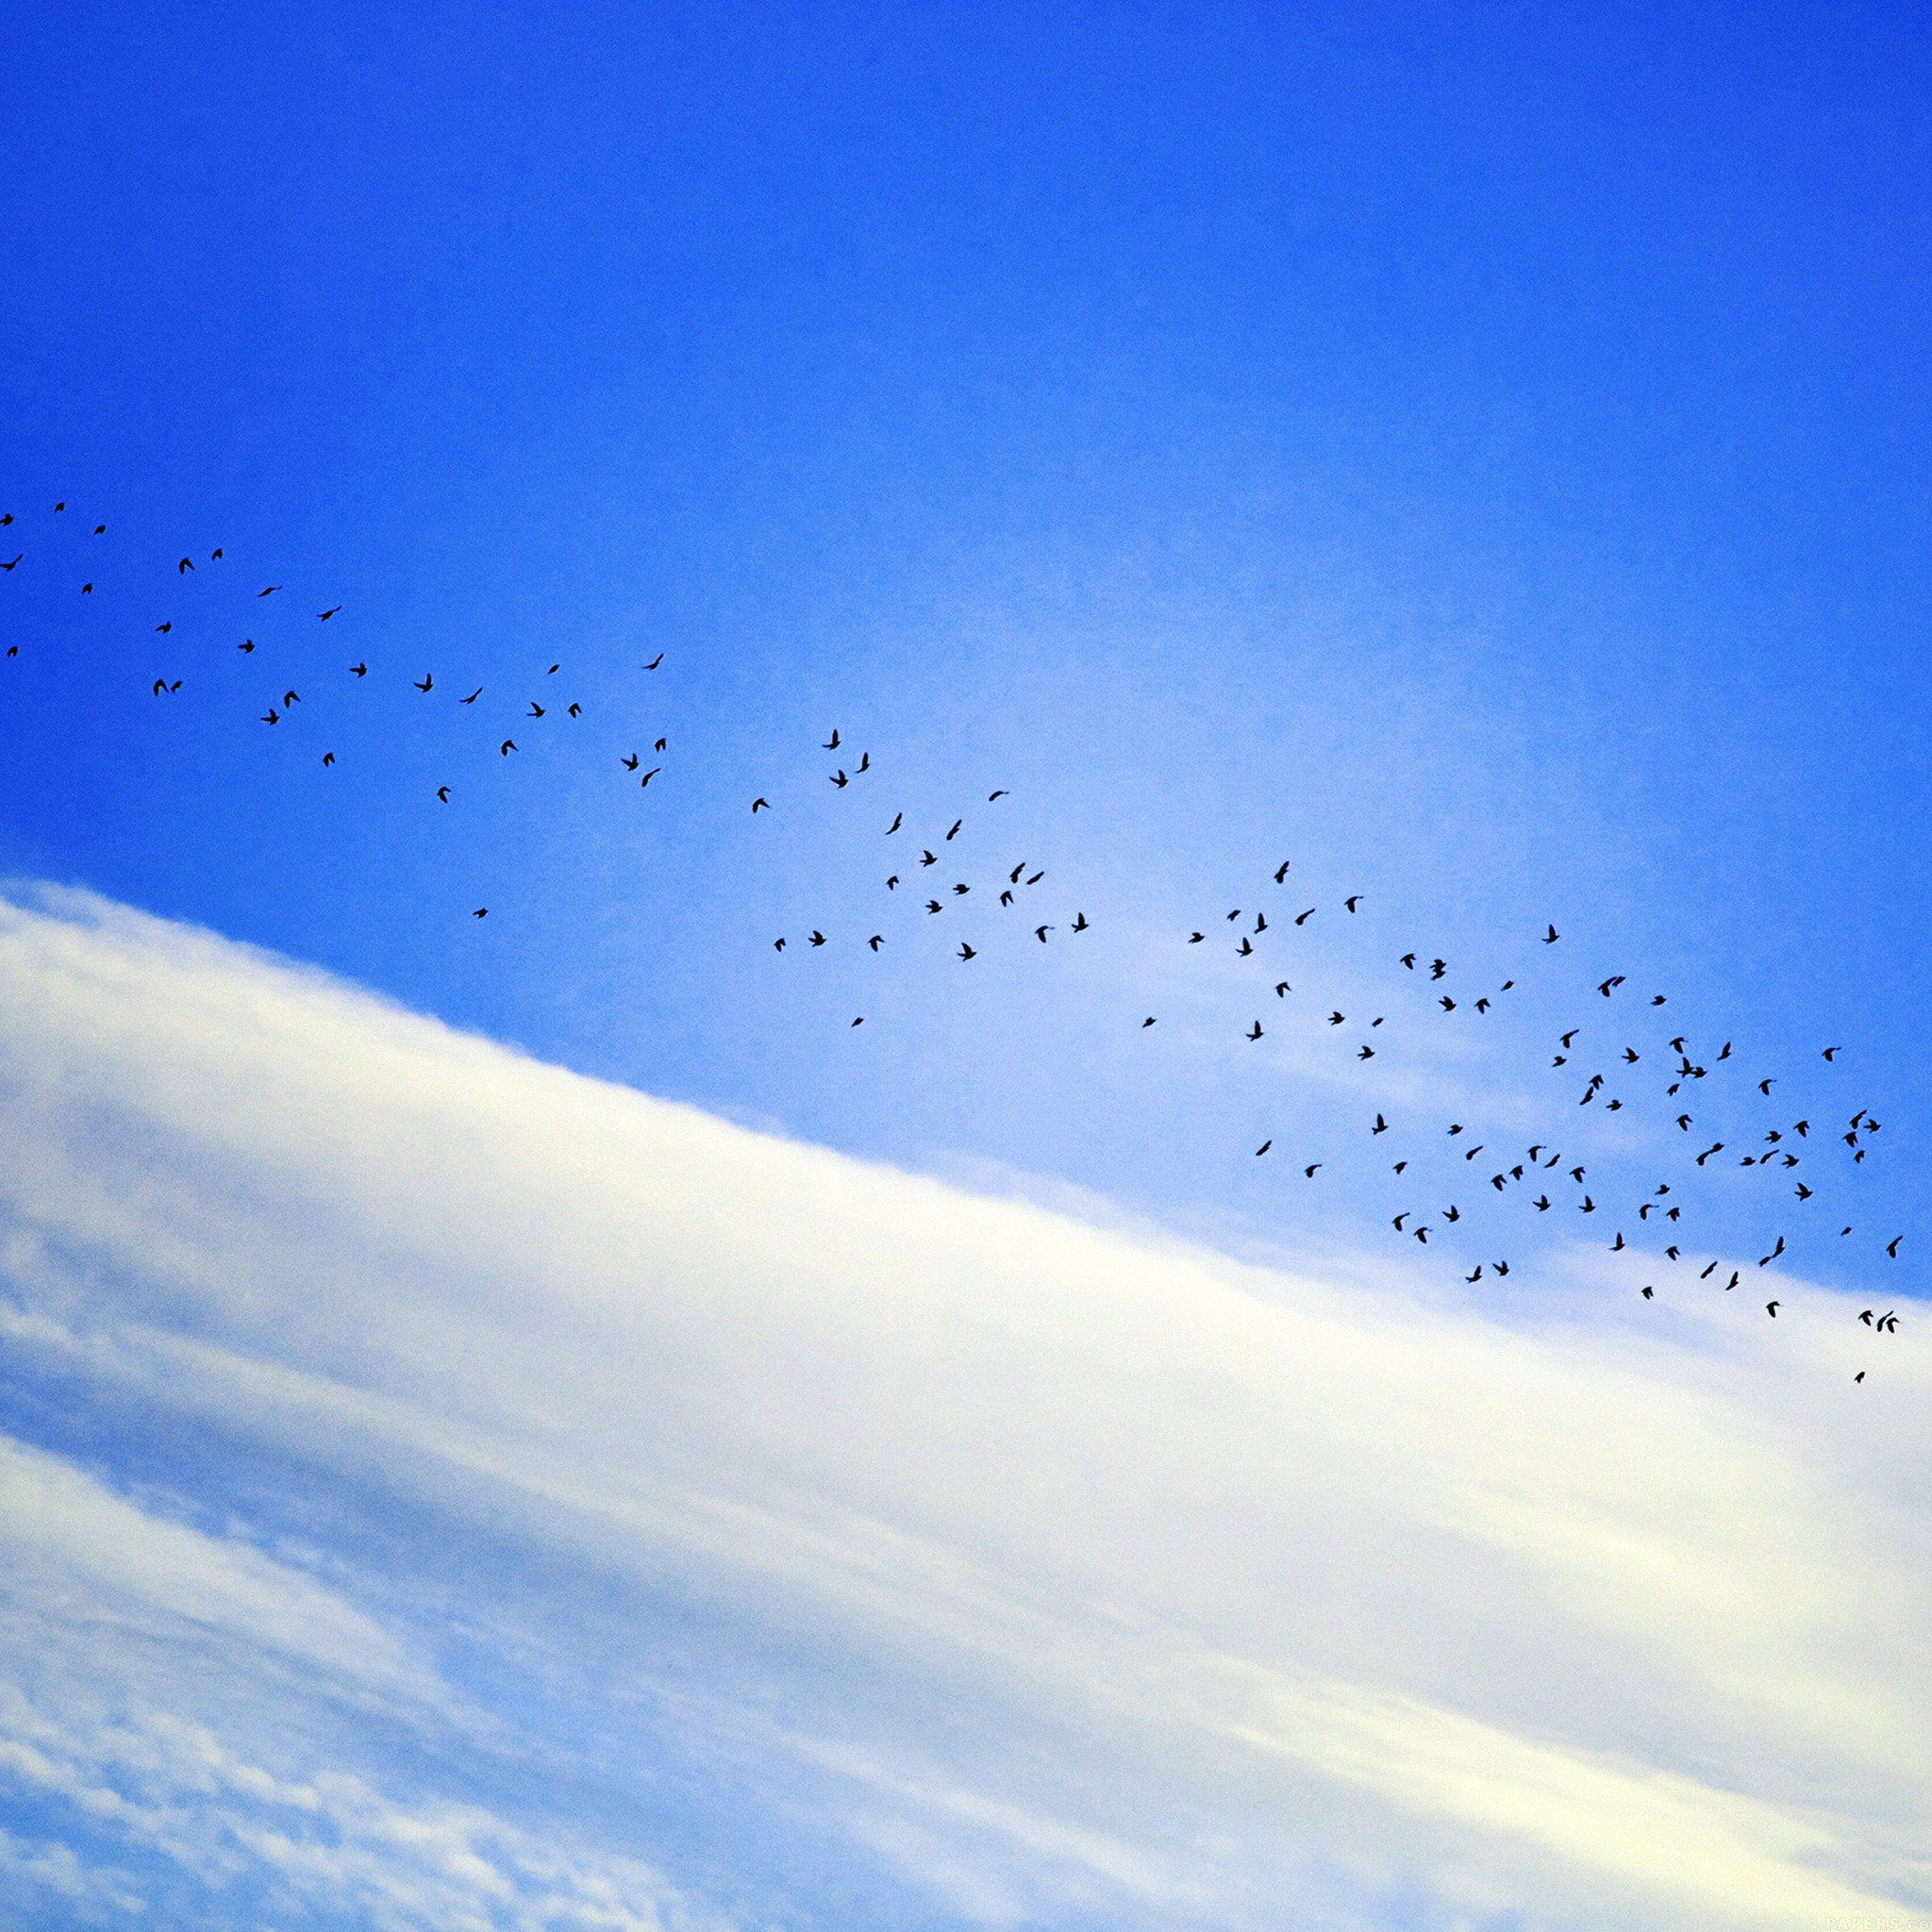 Sky Cloud Birds Blue Fly Nature iPad Air wallpaper